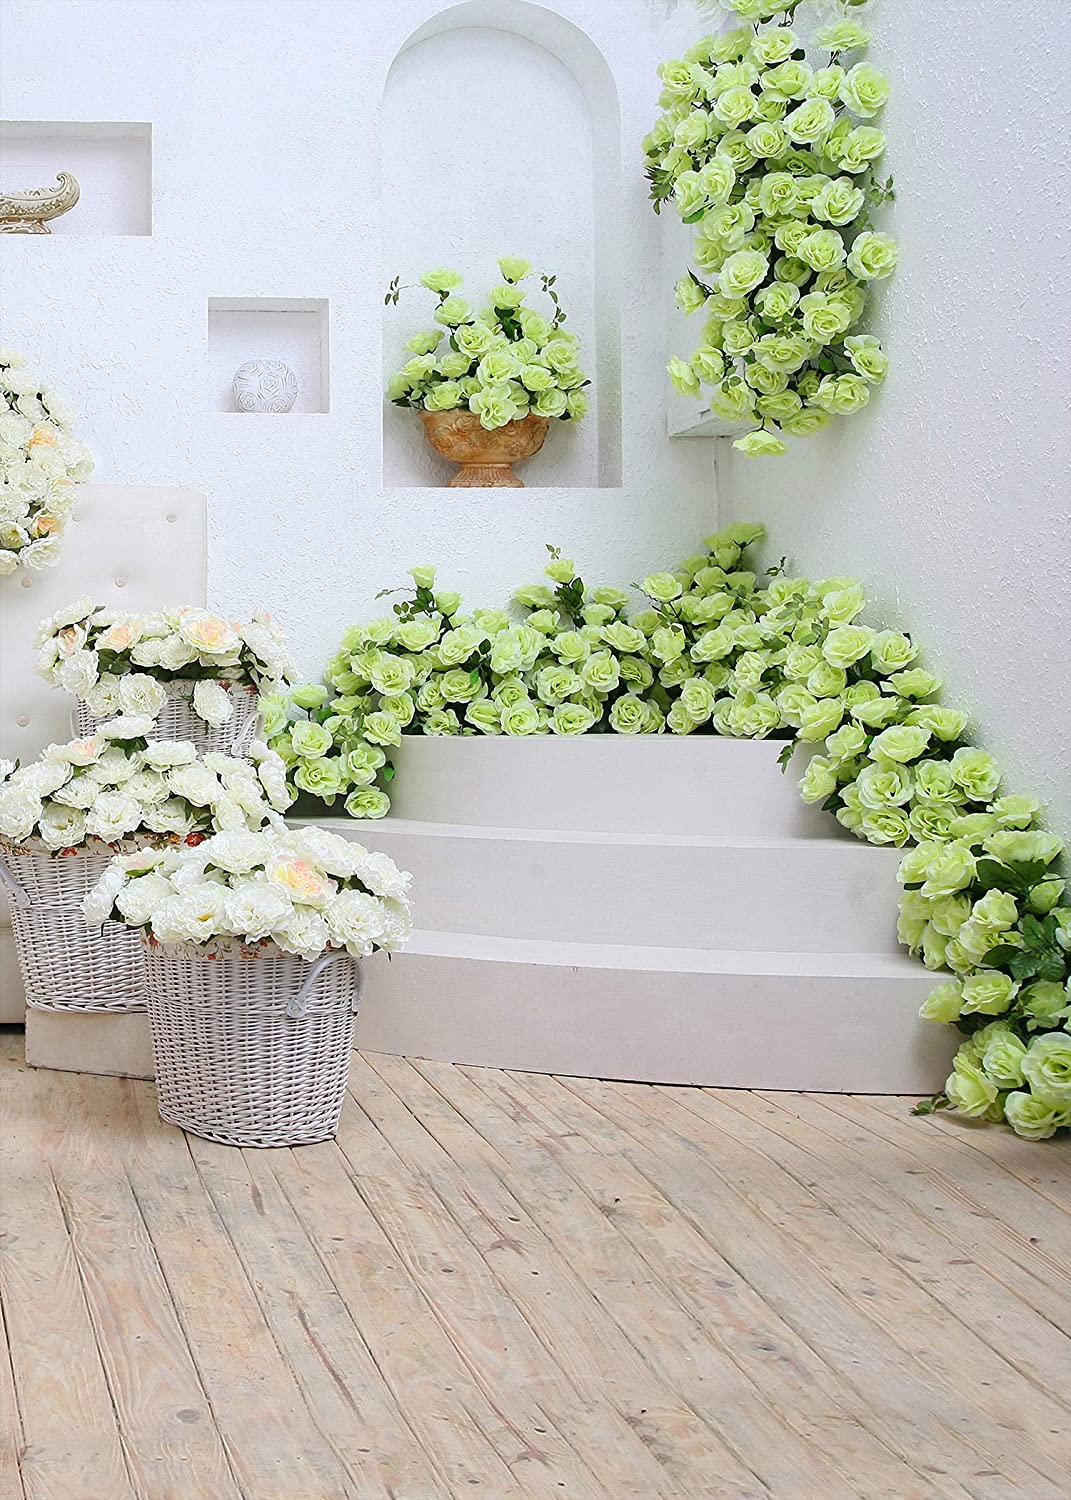 6x4ft Vinyl Indoor Flower Background White Flowers Pale Blue Flowers for Interior Decoration Wedding Photo Studio Photography Background LYZY0657 for Party Decoration Birthday YouTube Videos School Ph